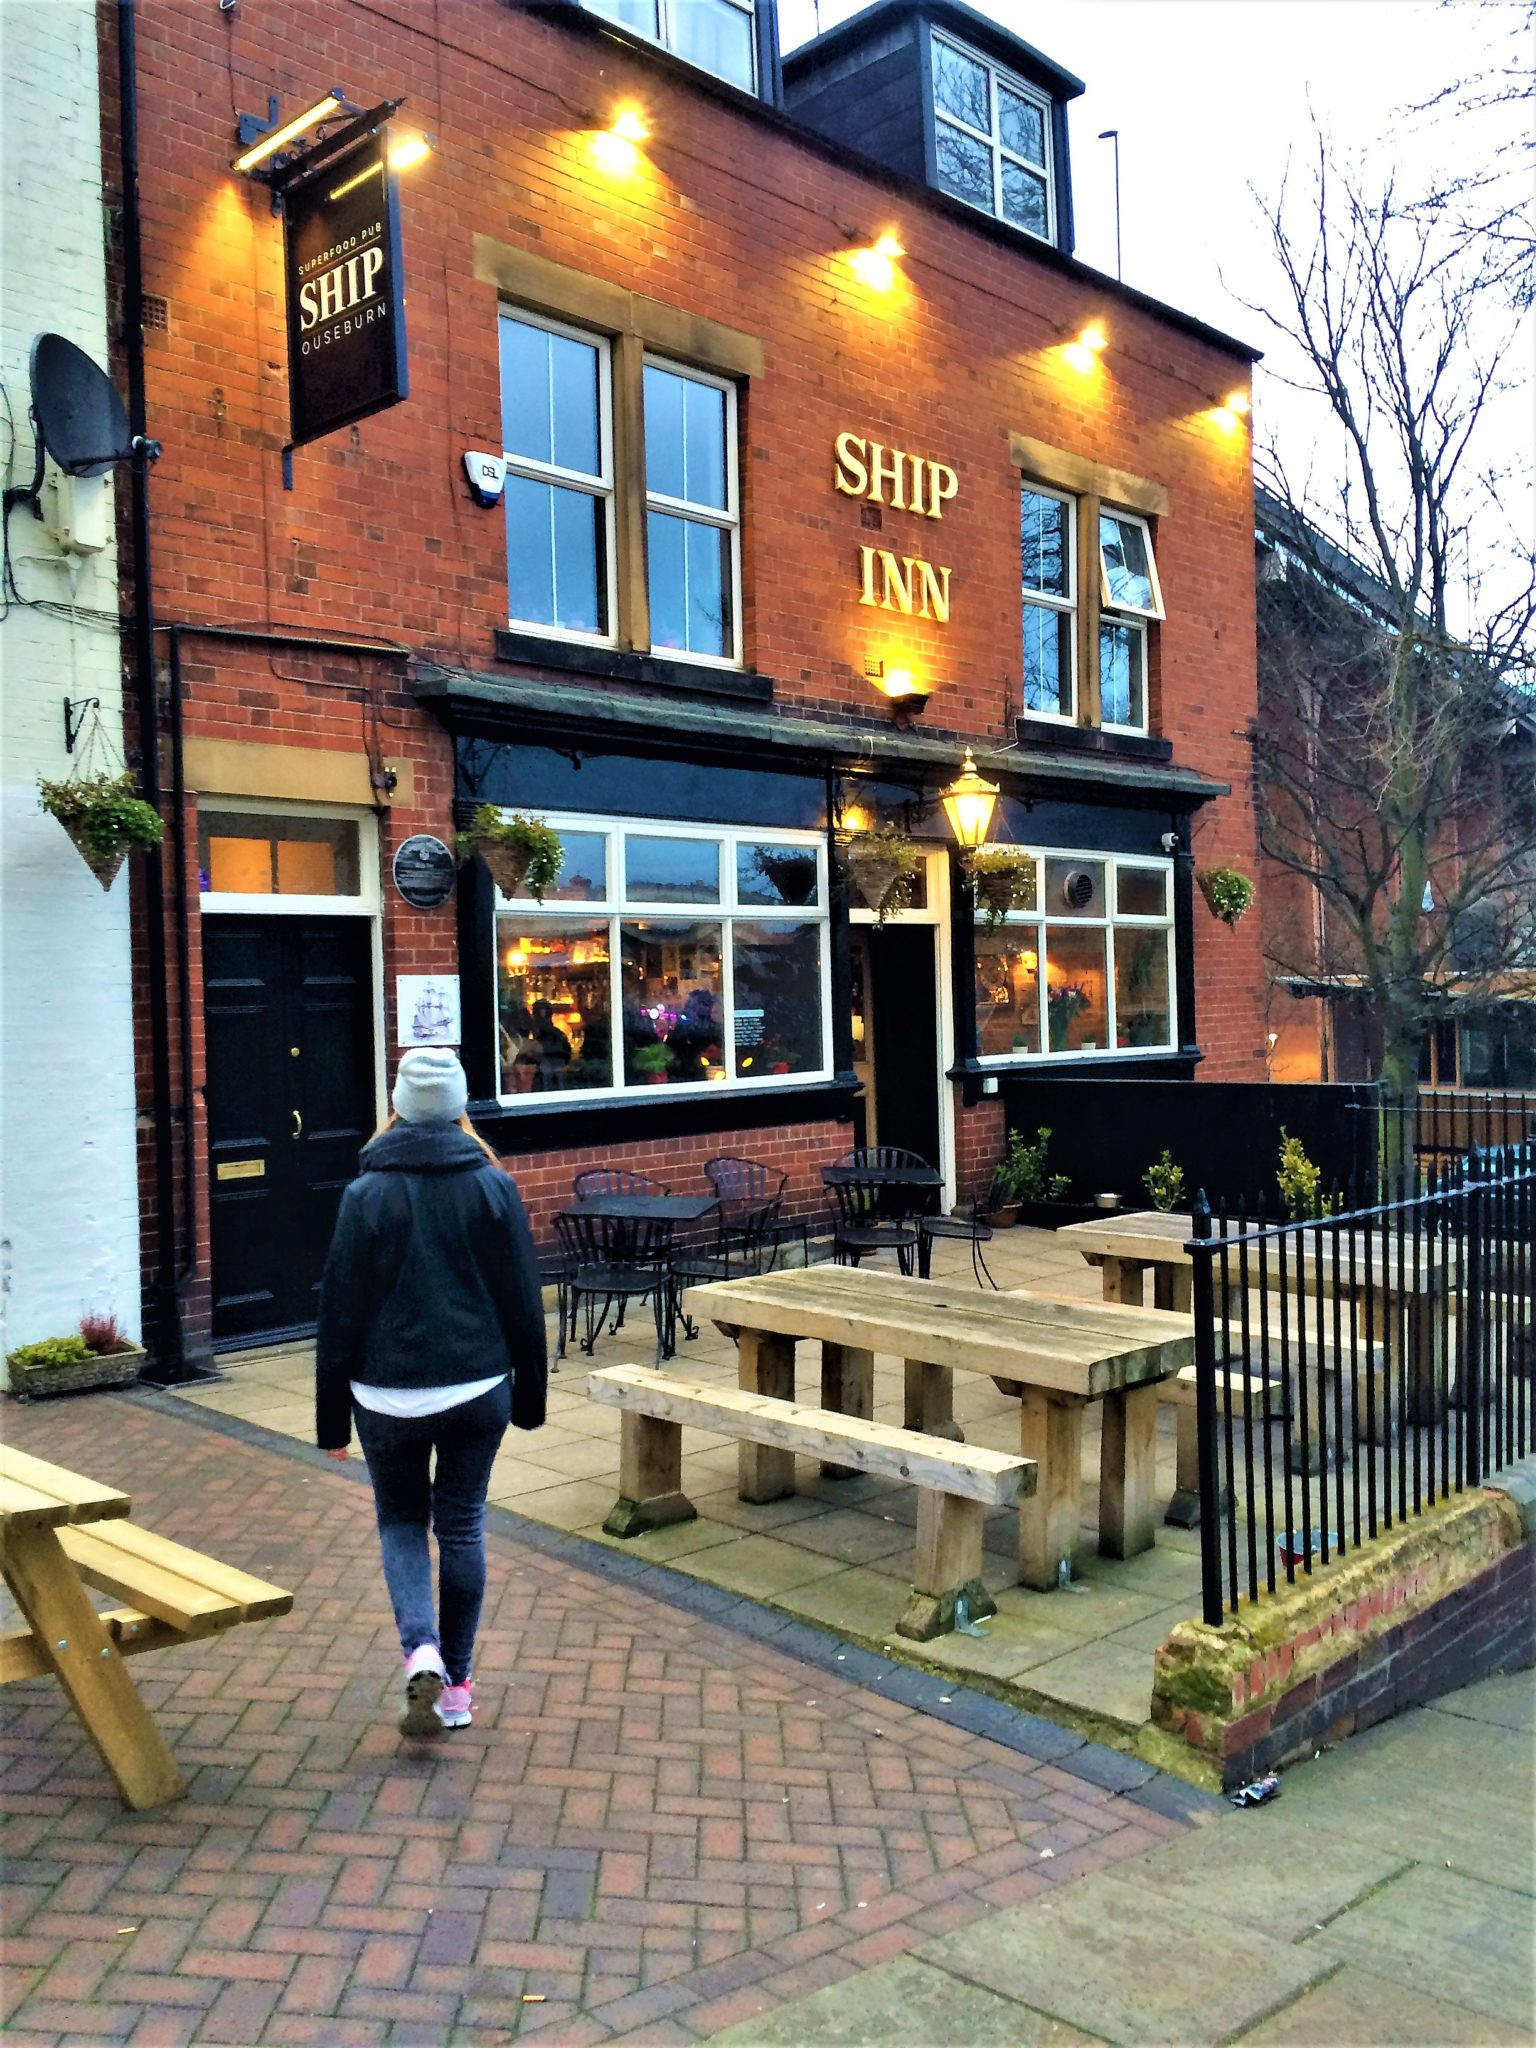 Ship Inn Ouseburn Newcastle Upon Tyne UK vegan menu review